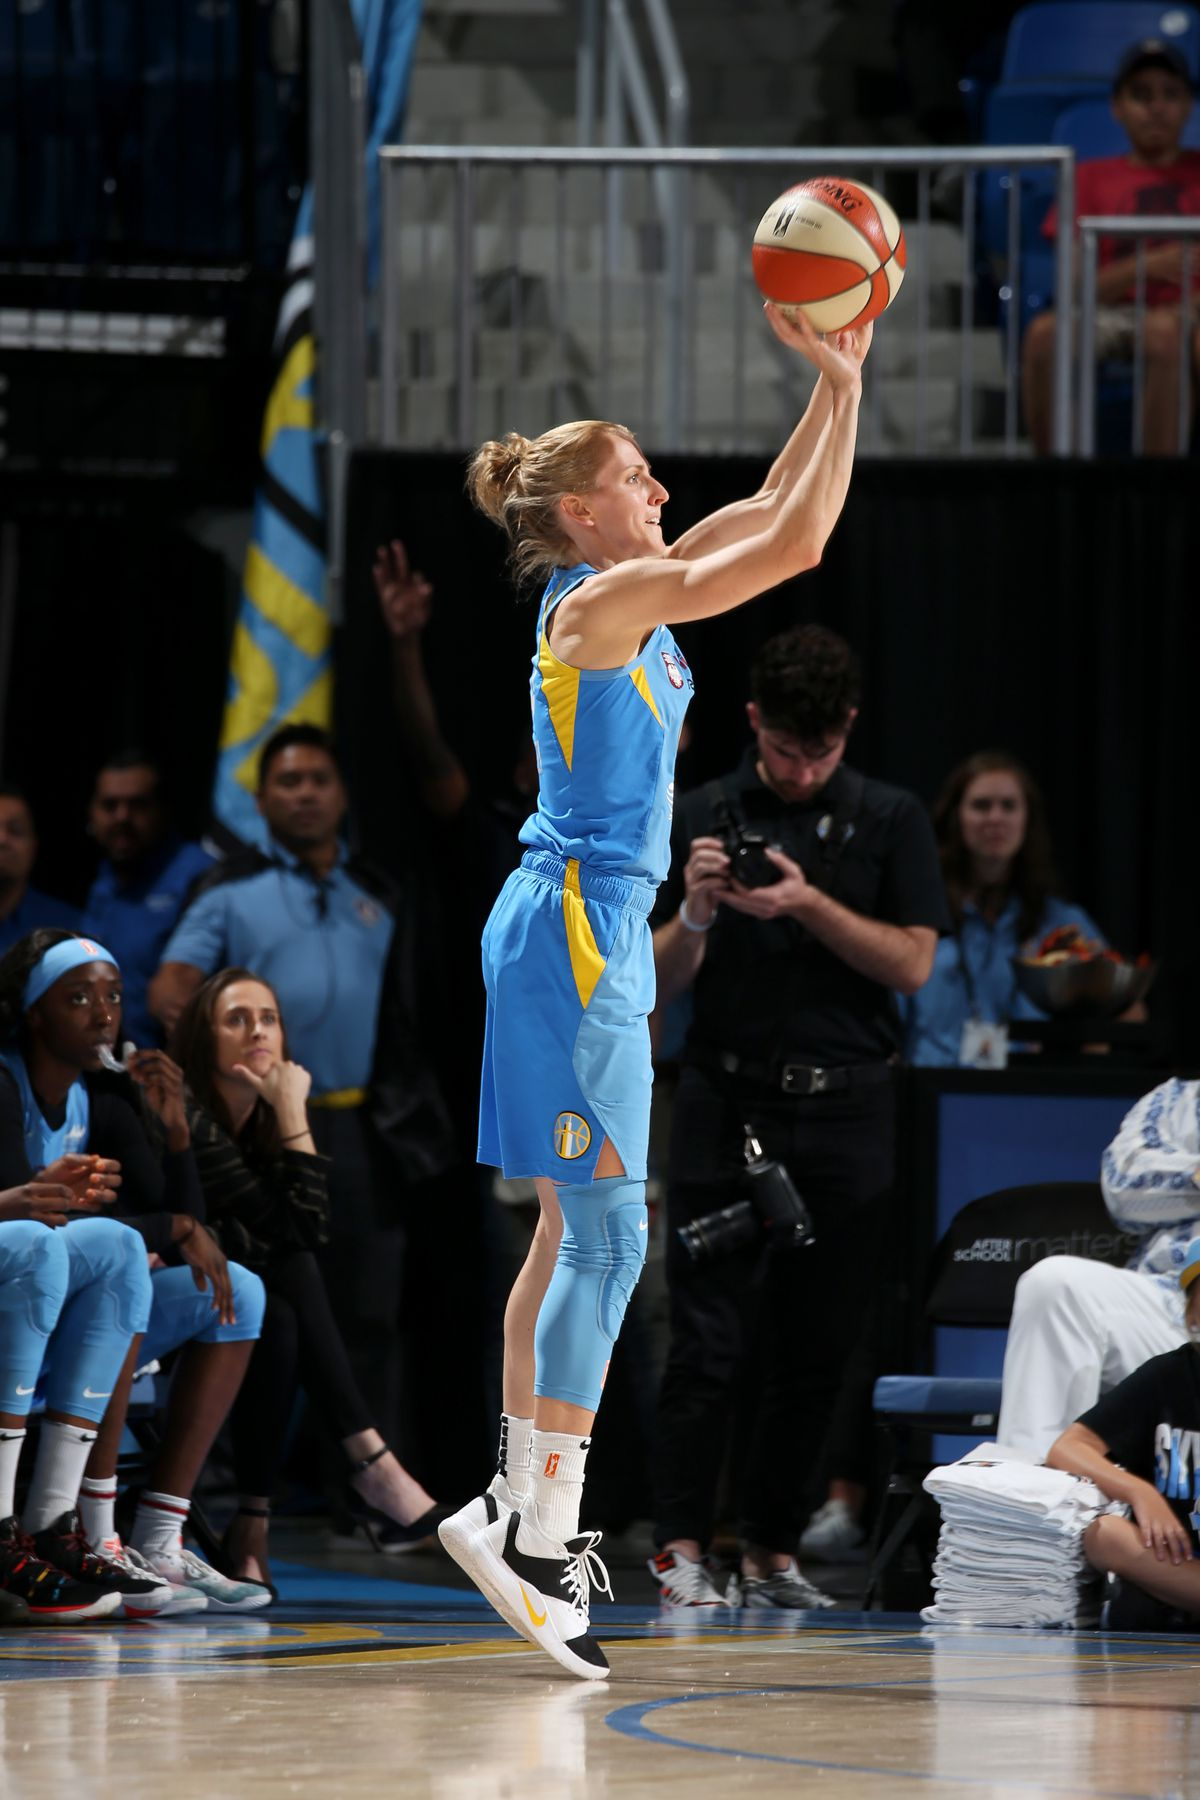 Los Angeles Sparks v Chicago Sky